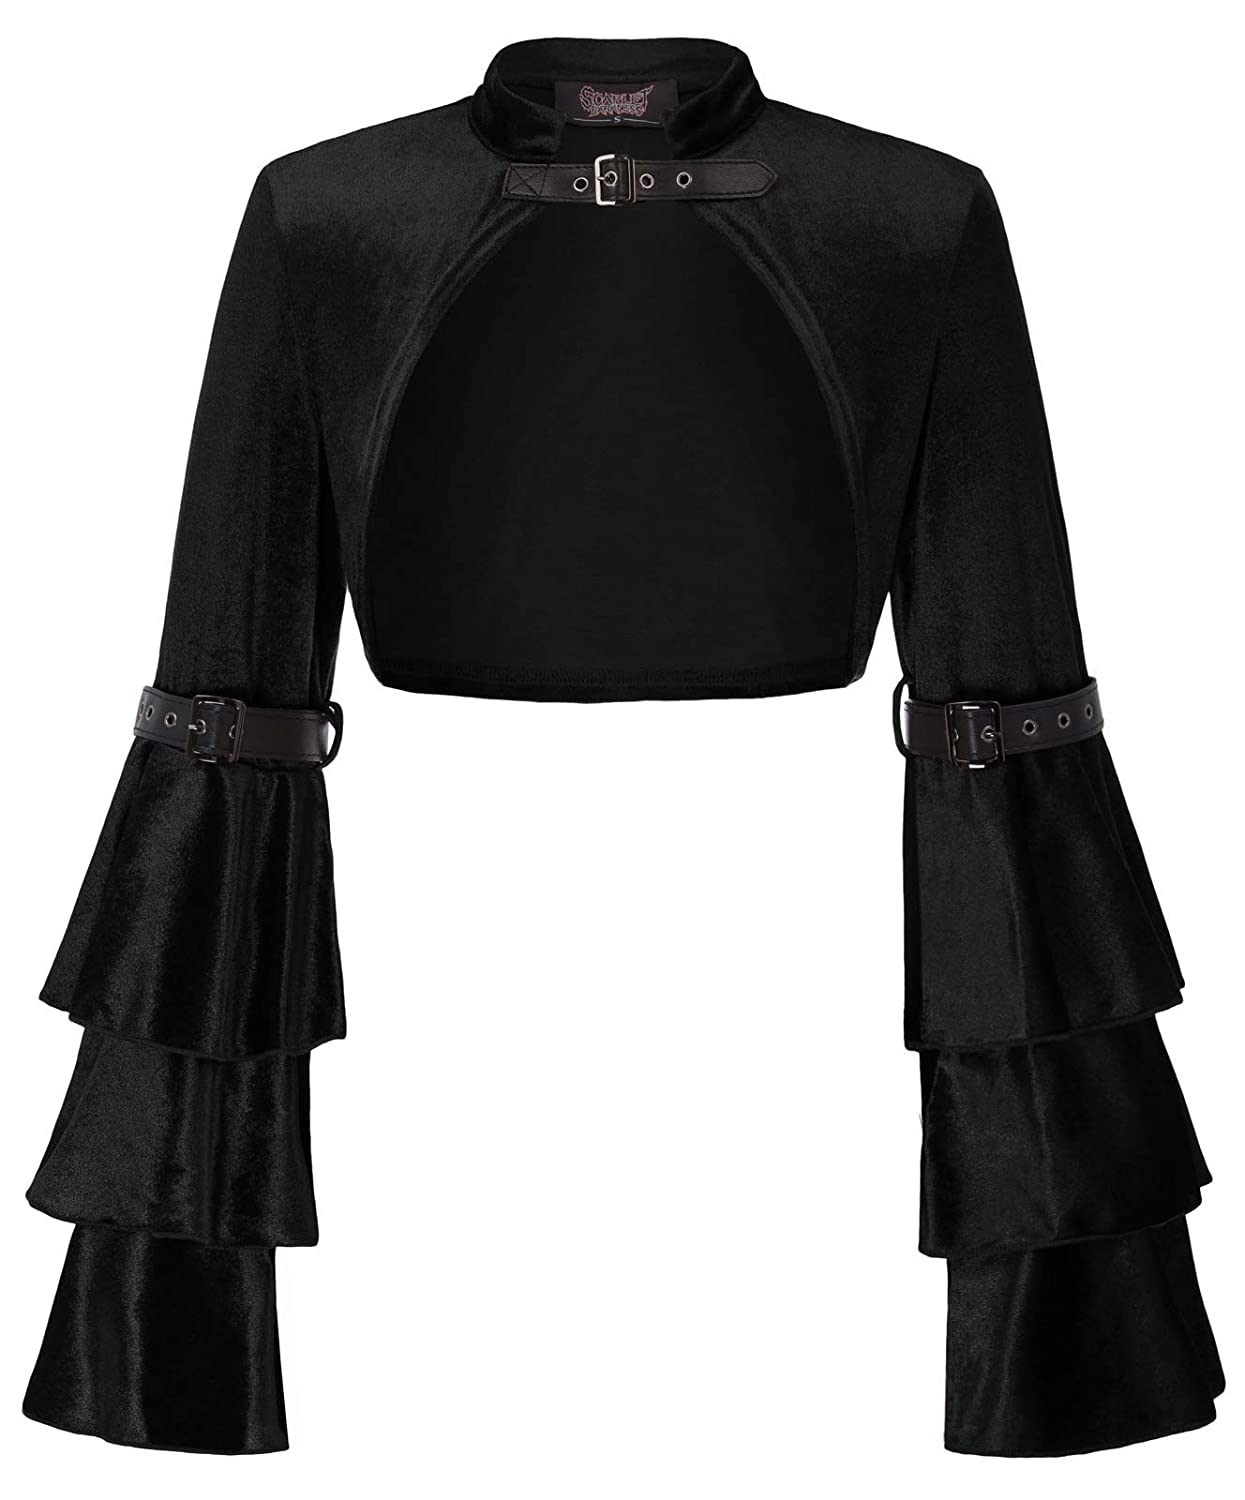 Steampunk Costumes, Outfits for Women SCARLET DARKNESS Womens Bell Sleeve Steampunk Jacket Shrug Gothic Bolero Shrug $23.99 AT vintagedancer.com